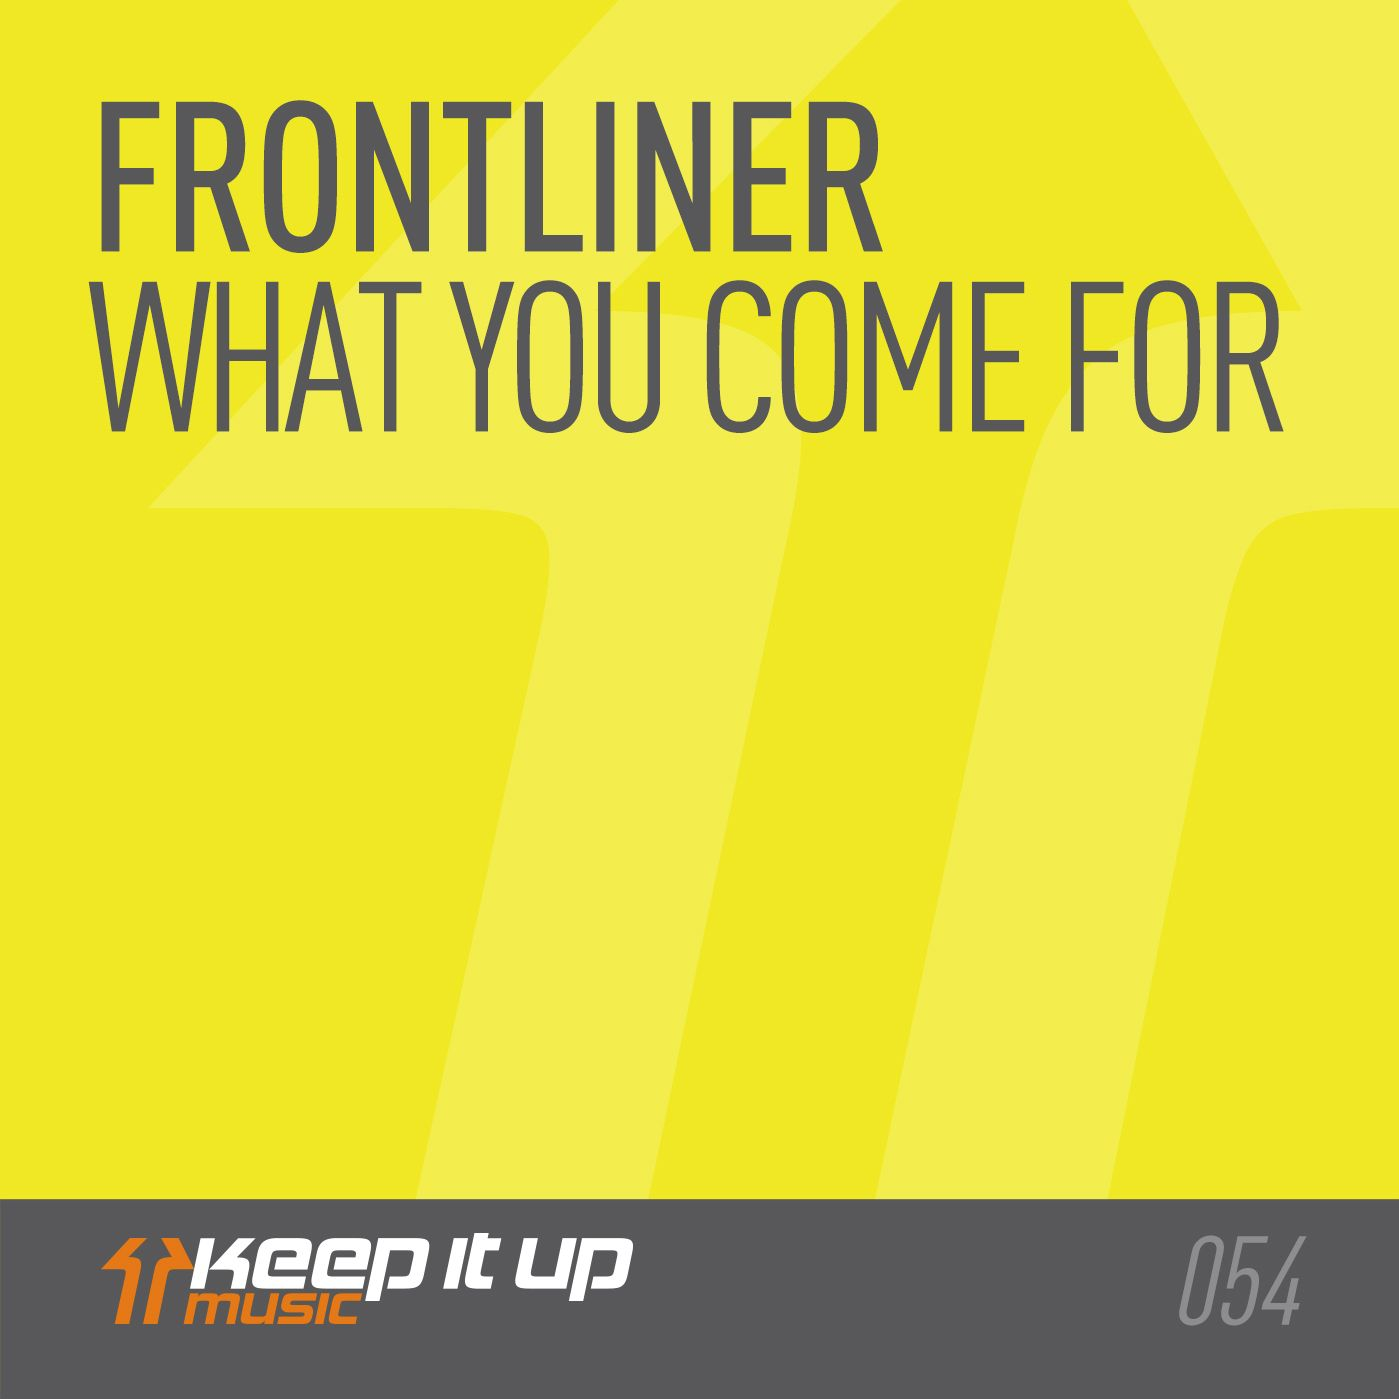 Frontliner - What You Come For KIU054